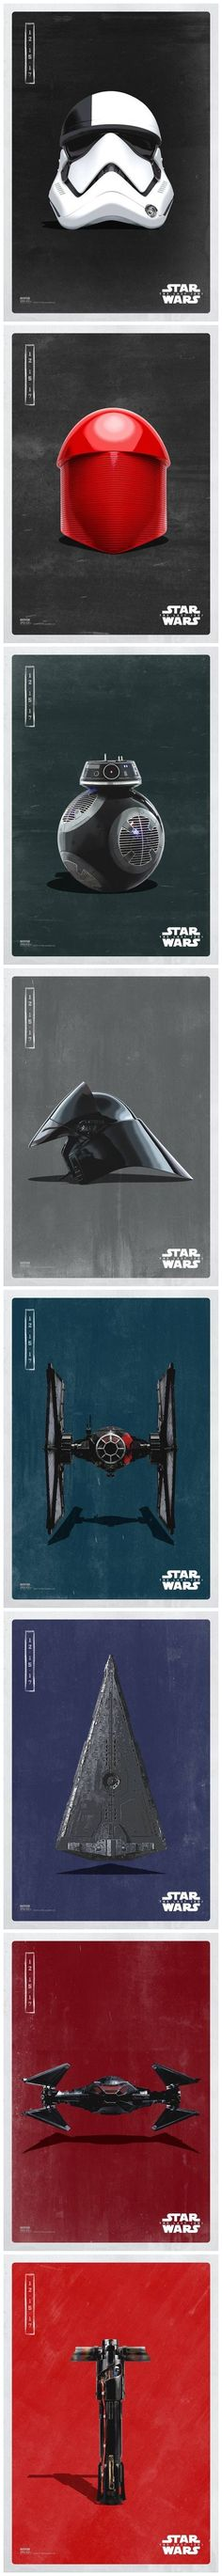 Official Star Wars: The Last Jedi 'Dark Side' posters